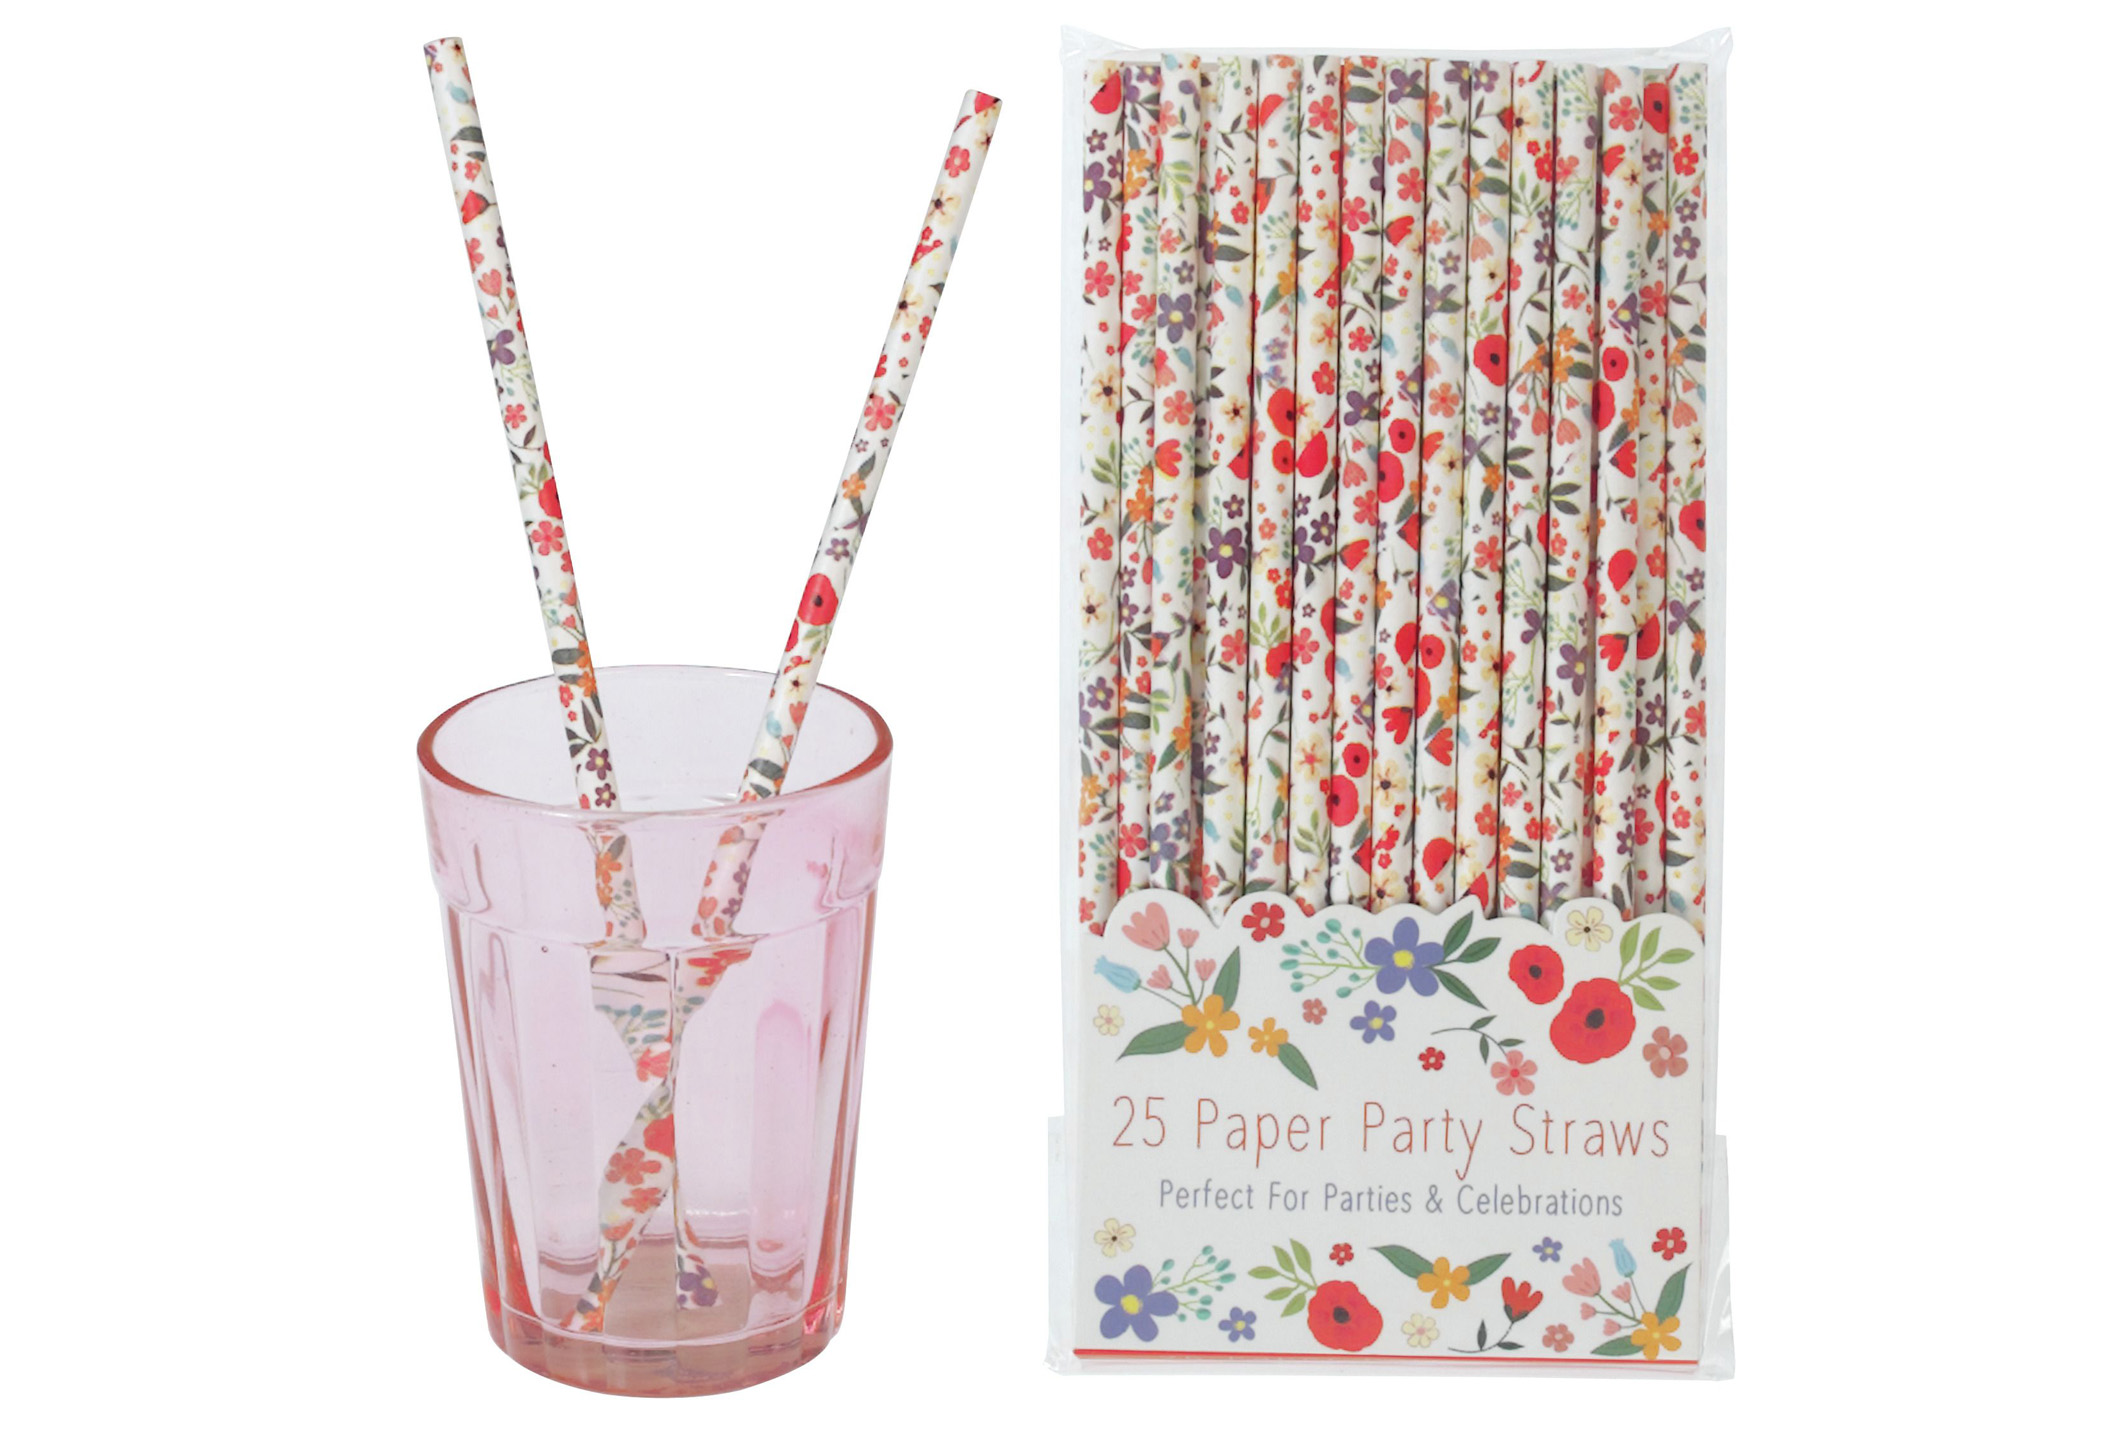 Summer Meadow paper straws, Rex London